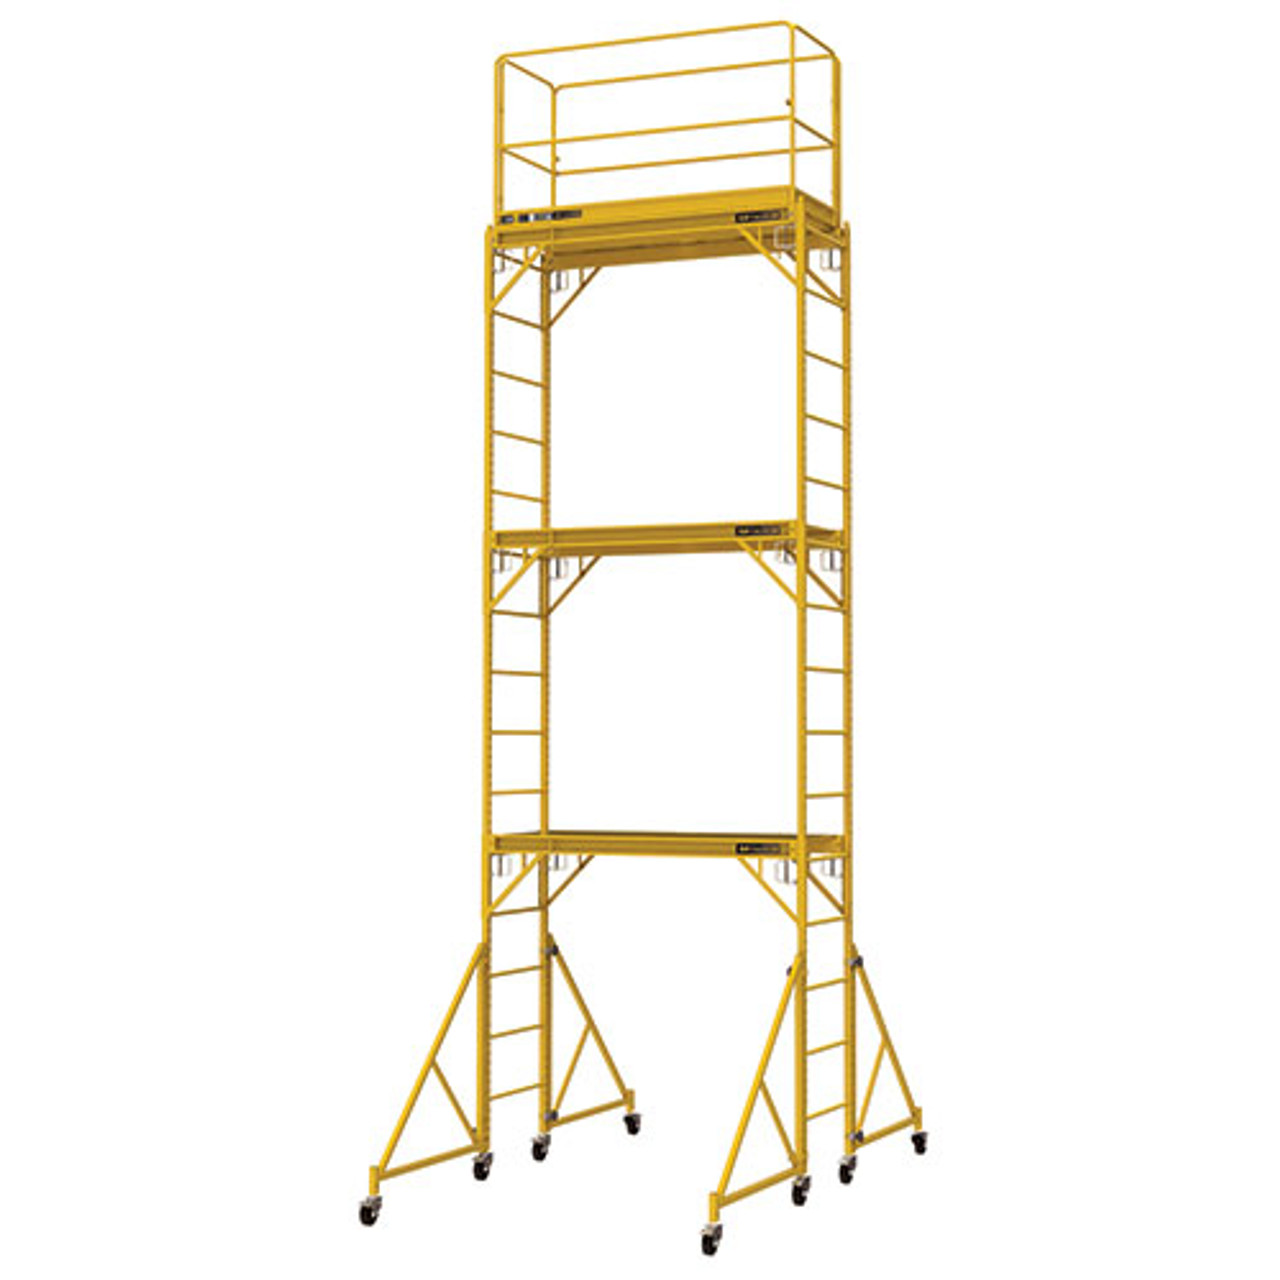 Metaltech I T3cisc 18 High Baker Style Scaffold Tower